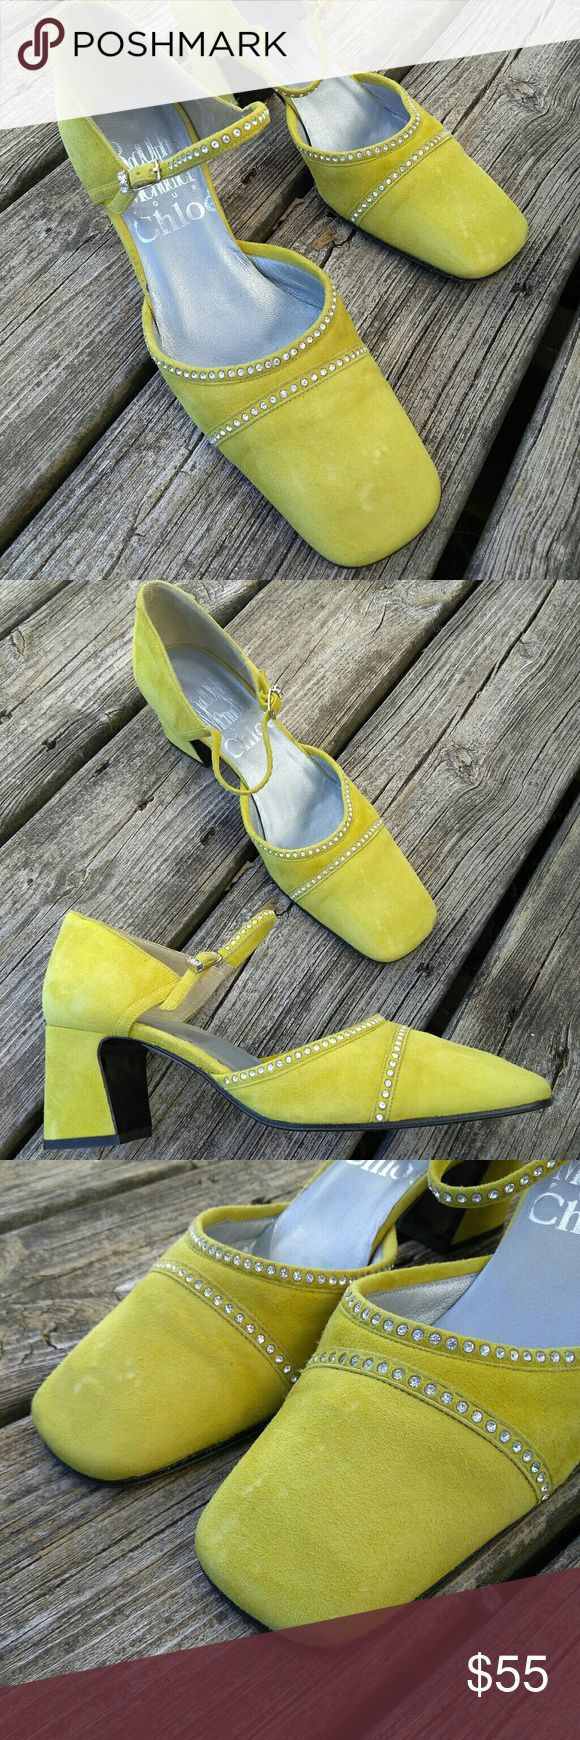 Chloe 35 EU Yellow Suede rhinestone Evening Shoes Very good to excellent condition! Clean toes with one smudge at toe edge as shown and a couple of v tiny marks near heels. Soles look v good. Chloe Shoes Platforms